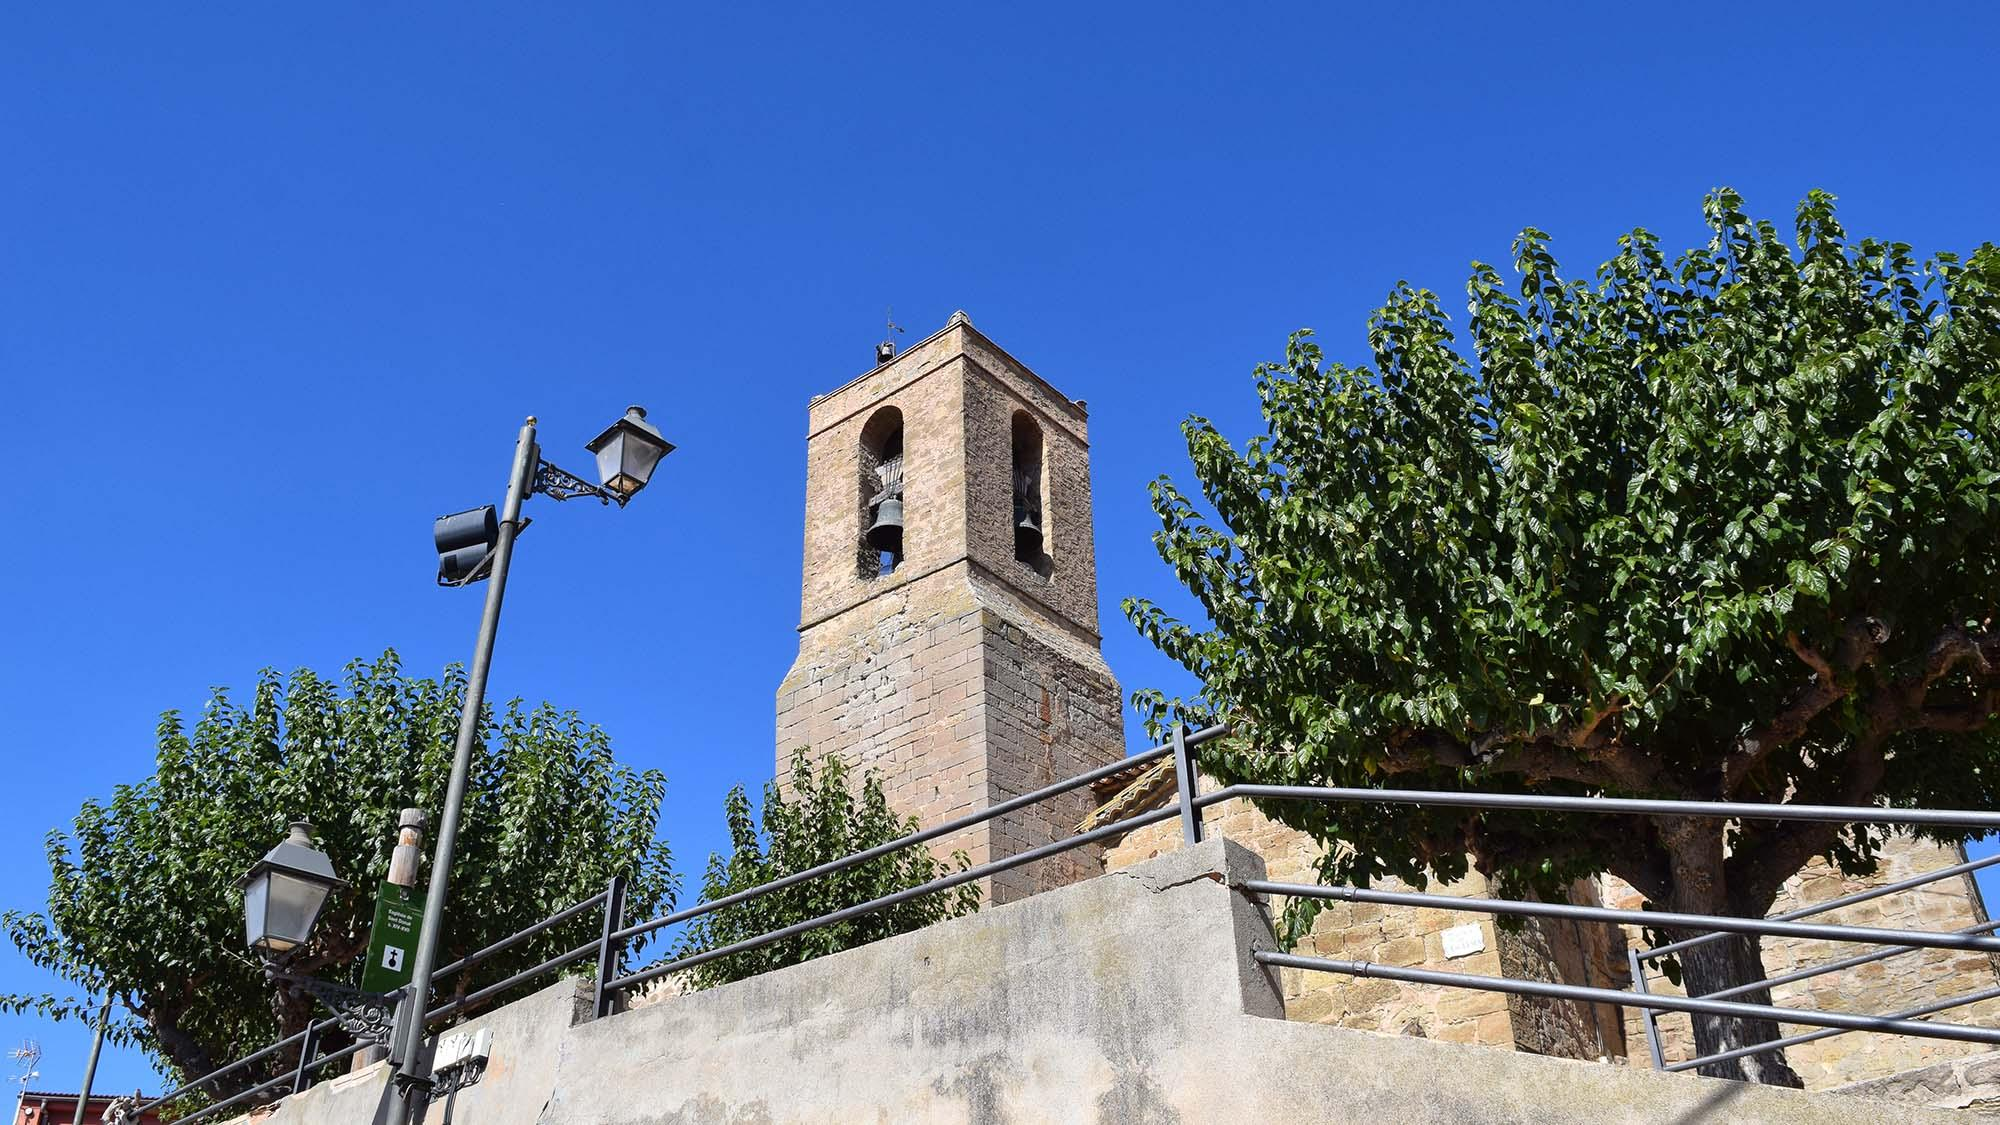 Church Sant Donat